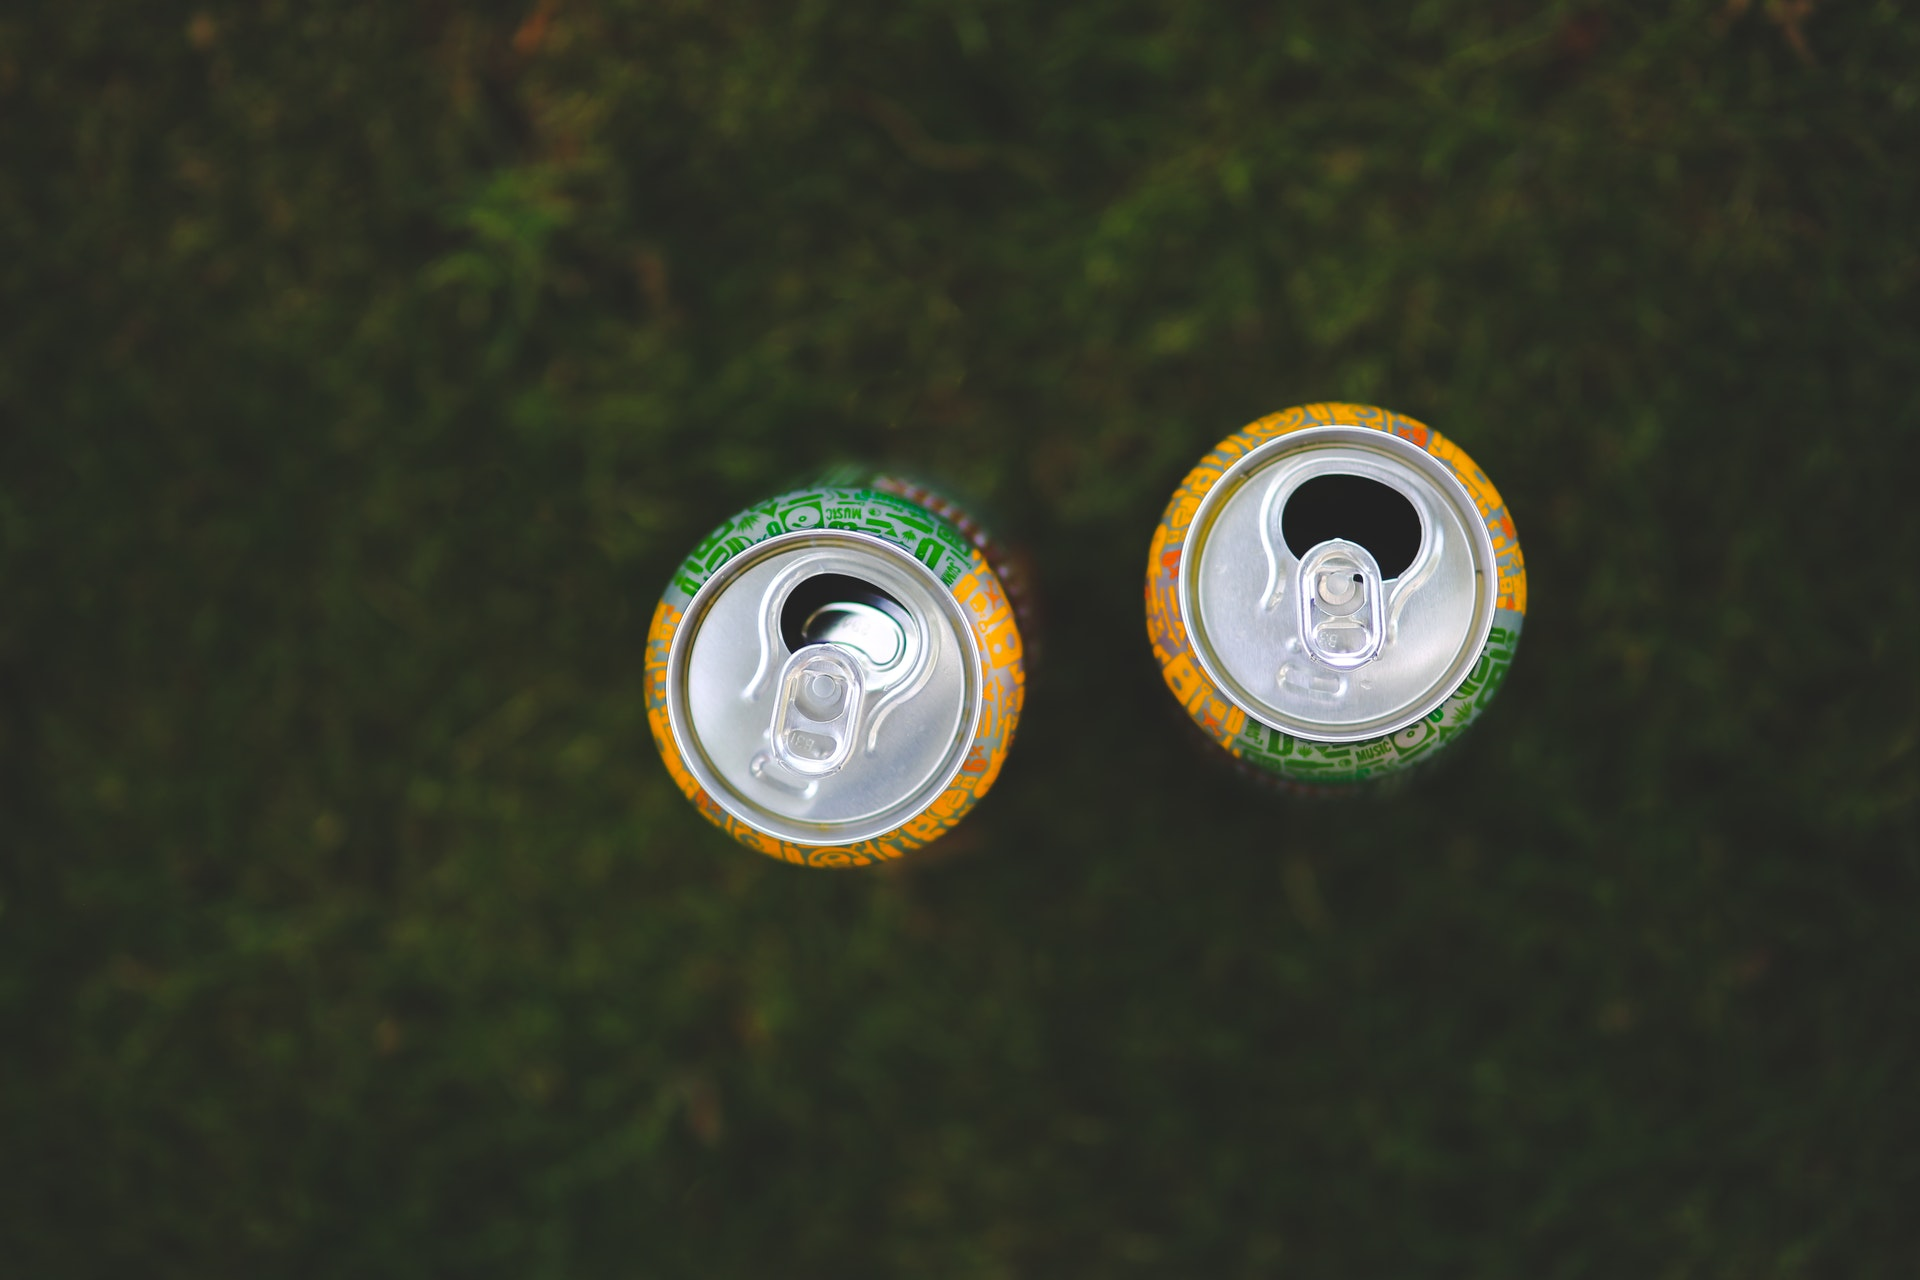 An overhead image of two open soda cans on a grass floor.